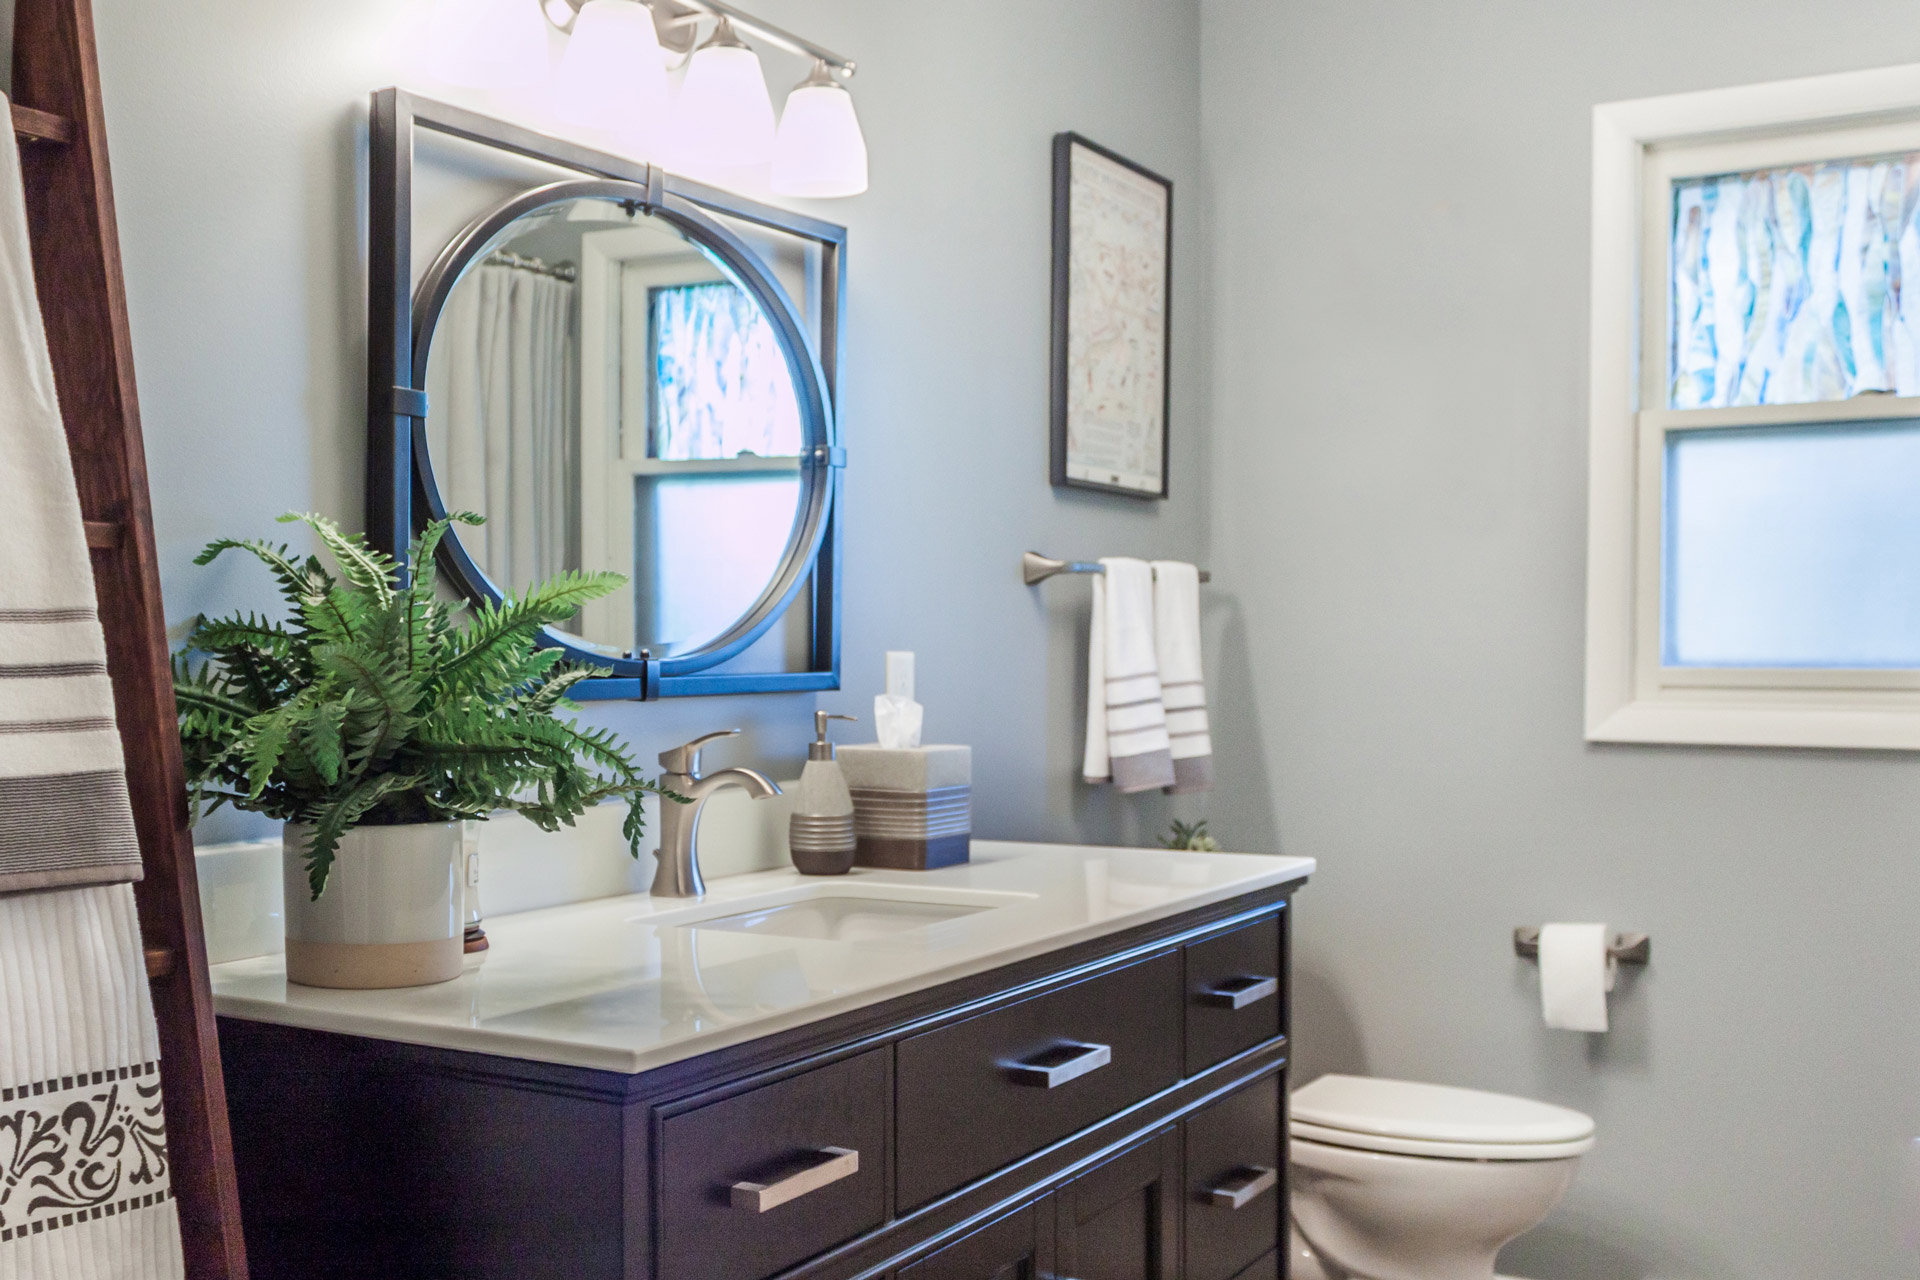 Small Bathroom Remodeling: Storage and Space Saving Design ... on Small Bathroom Renovation Ideas  id=51136